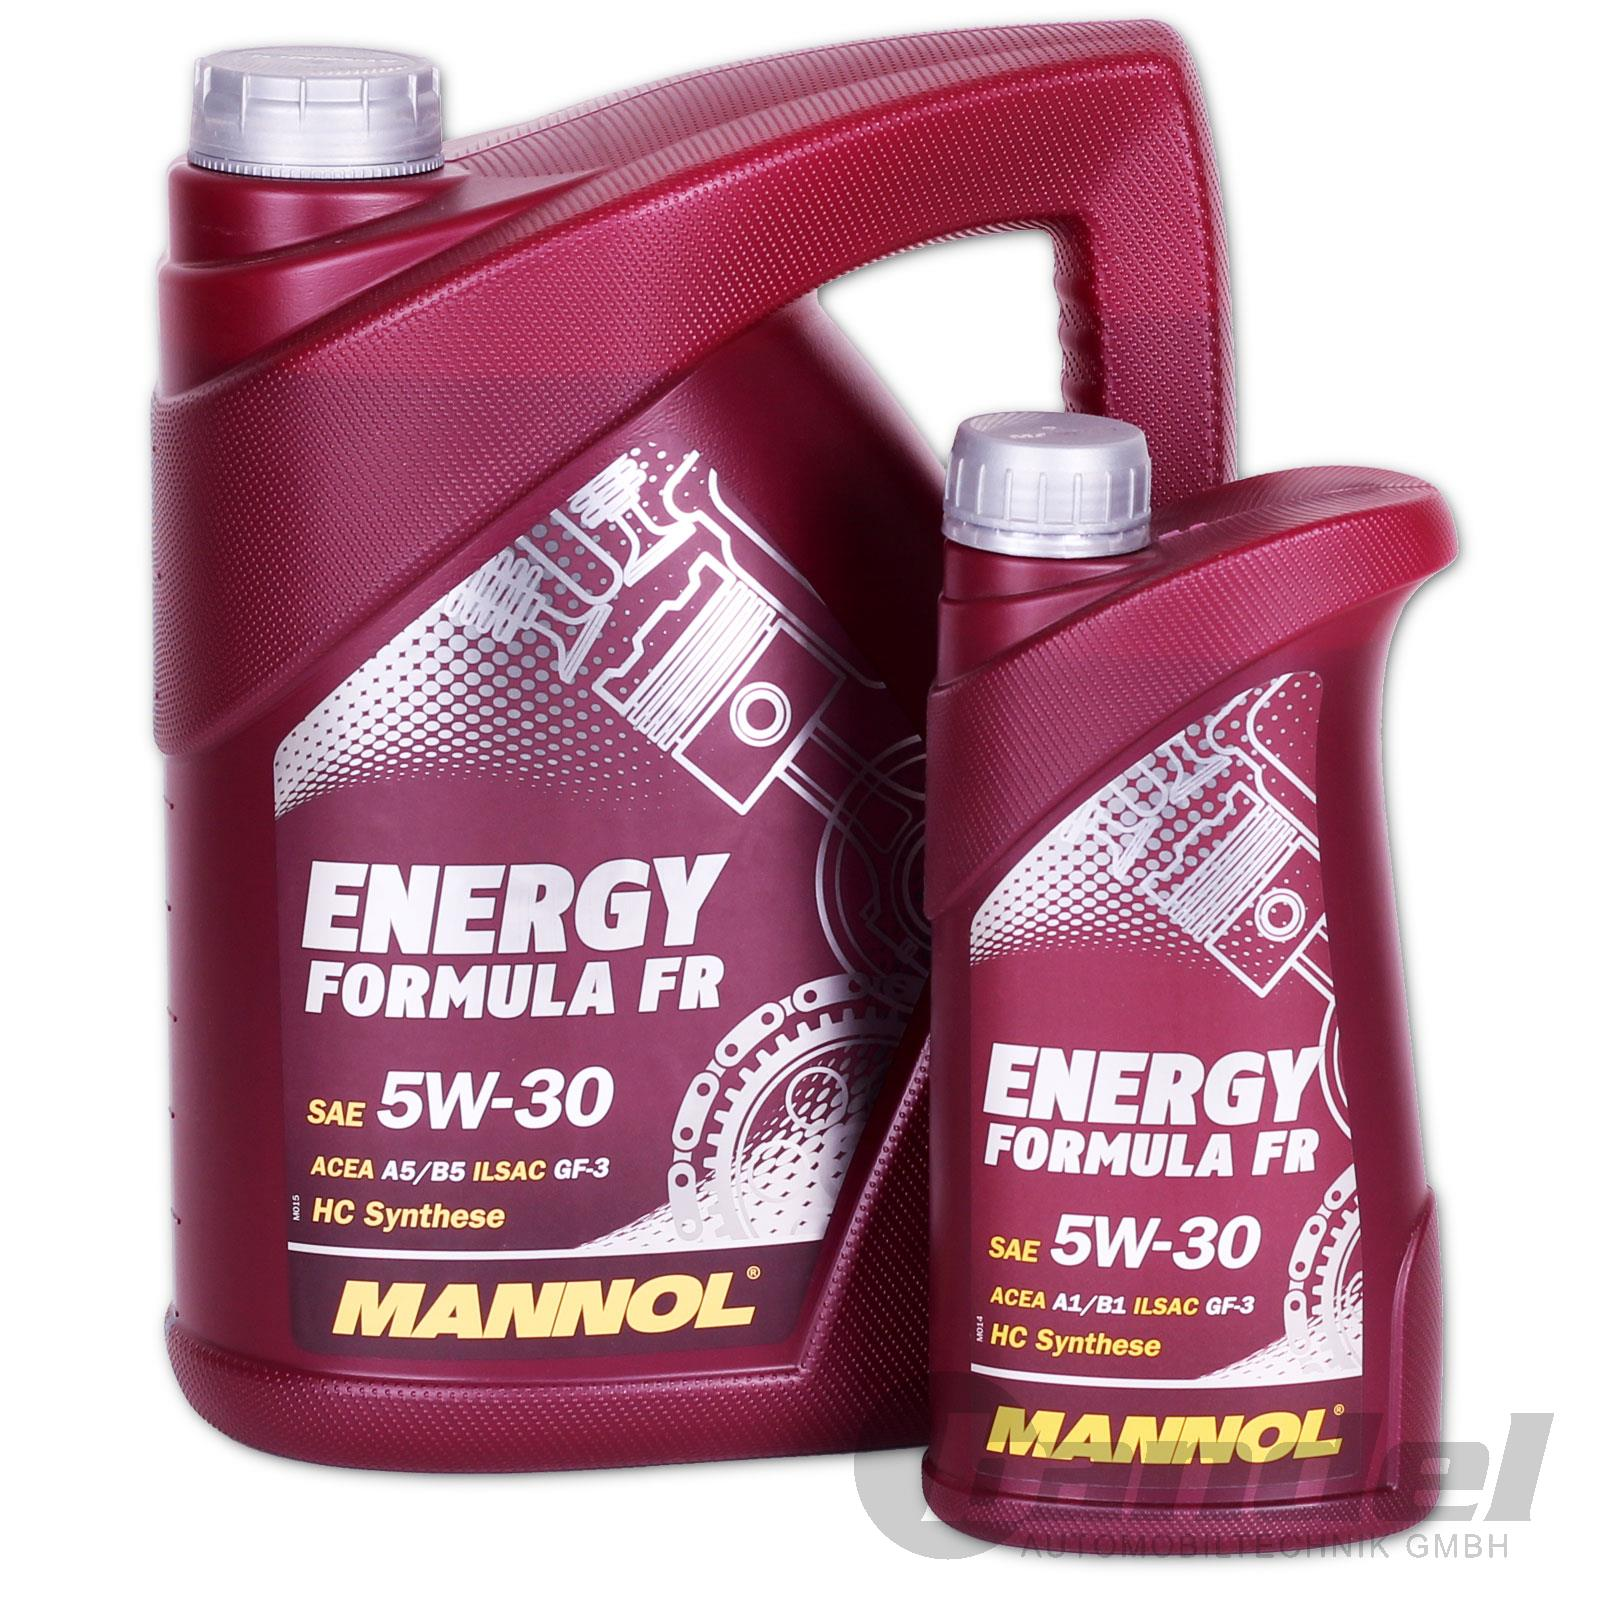 3 50 1l 6 liter 5 1 sae 5w 30 motor l mannol energy formula fr f r ford ebay. Black Bedroom Furniture Sets. Home Design Ideas